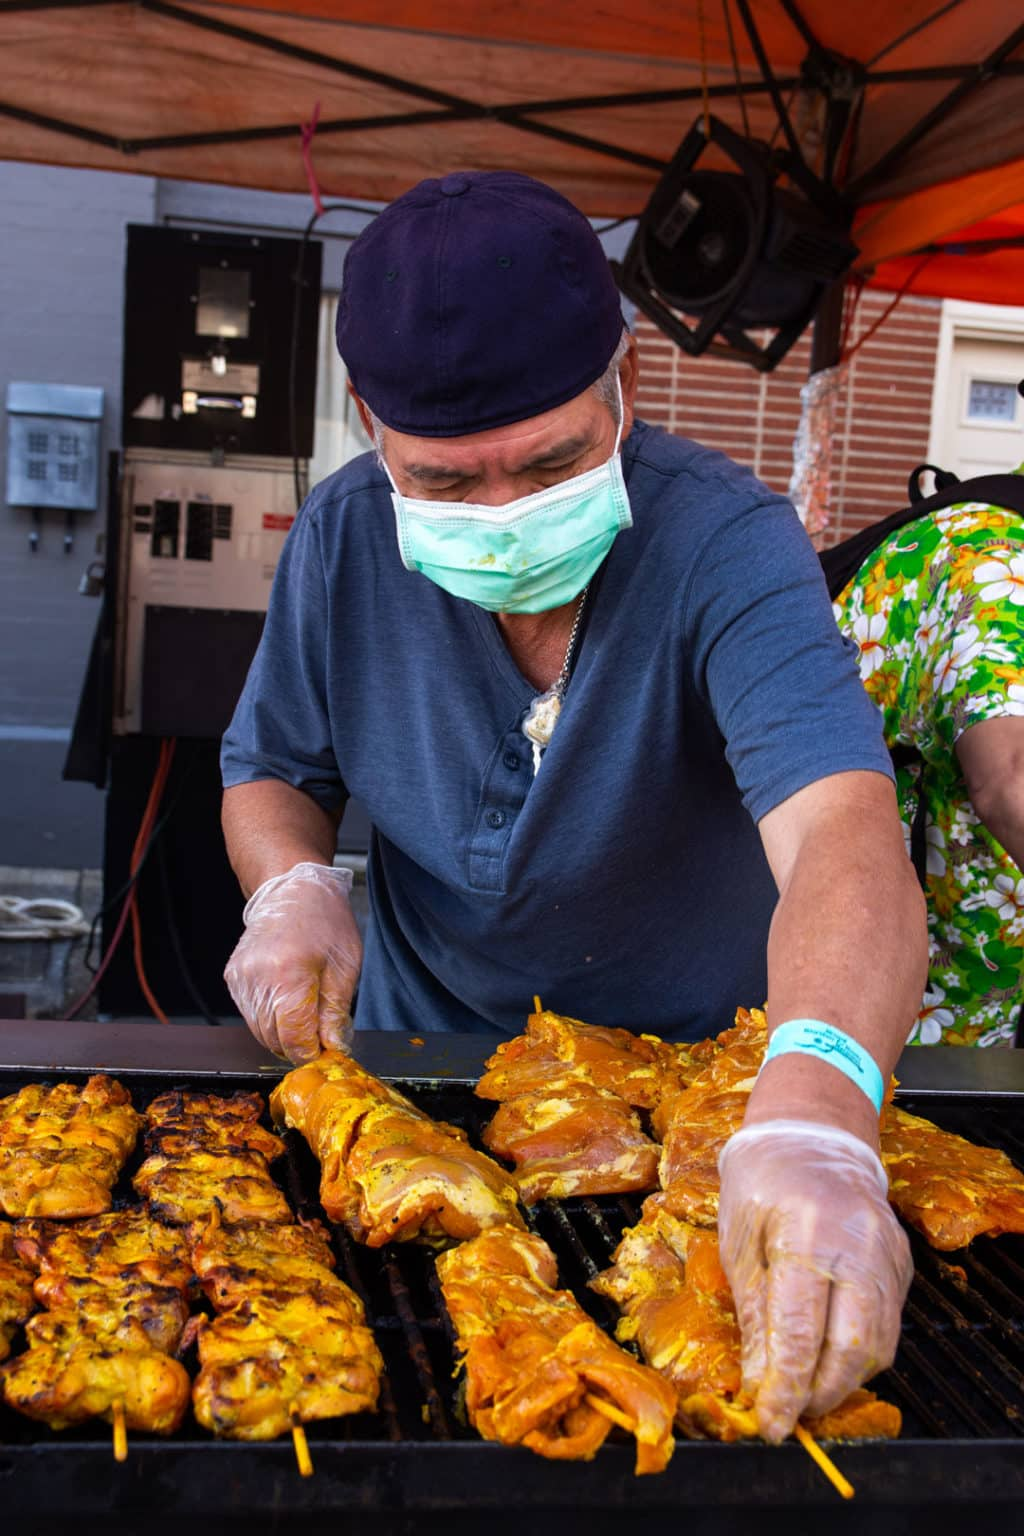 A vendor cooks meat on a grill while wearing a backwards hat and a medical mask.